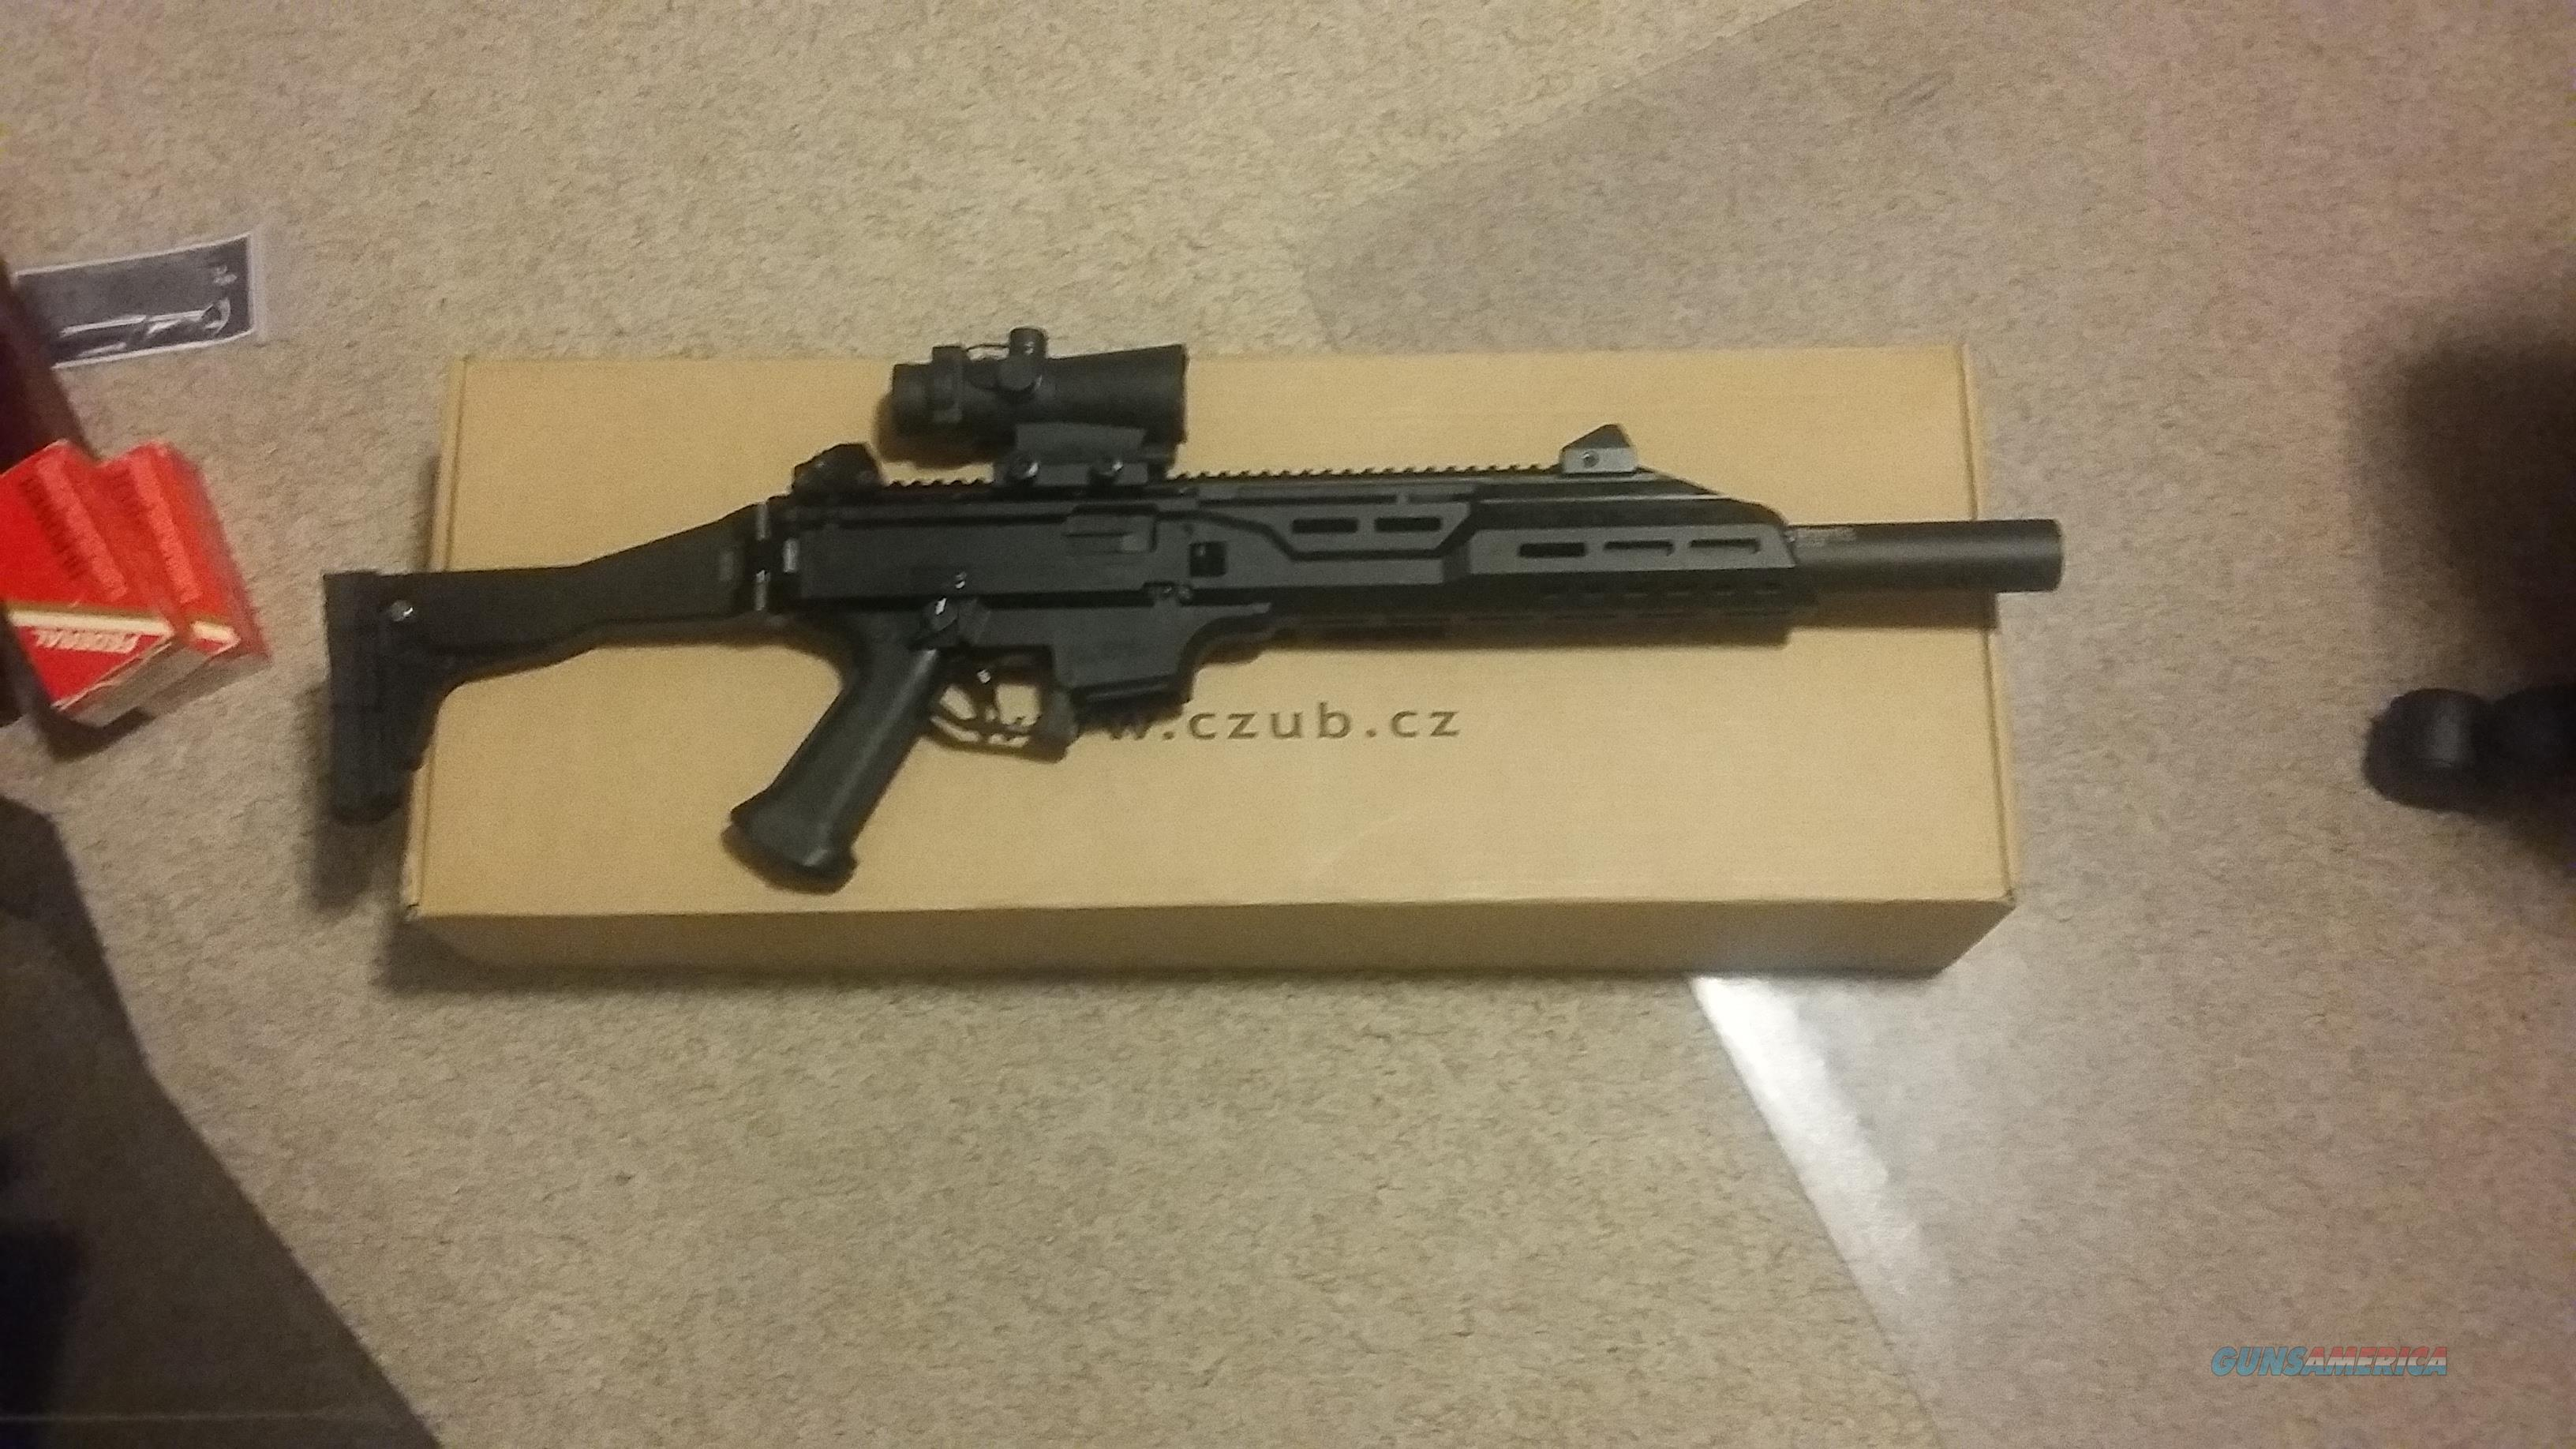 CZ Evo Scorpion carbine faux suppressor optic  Guns > Rifles > CZ Rifles